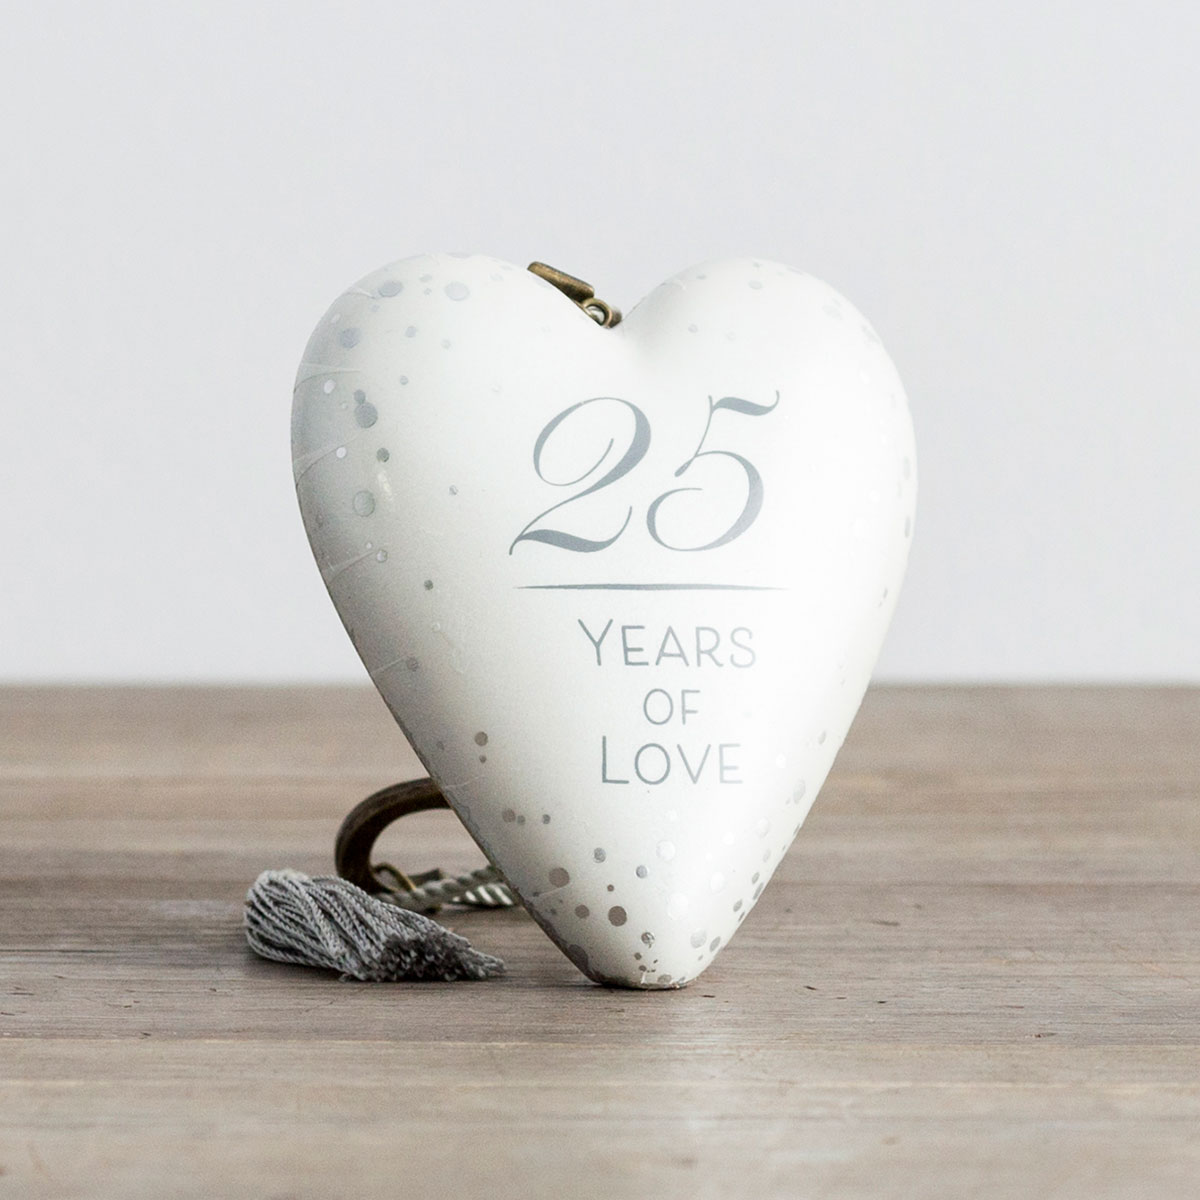 25 Years of Love - Art Heart Sculpture